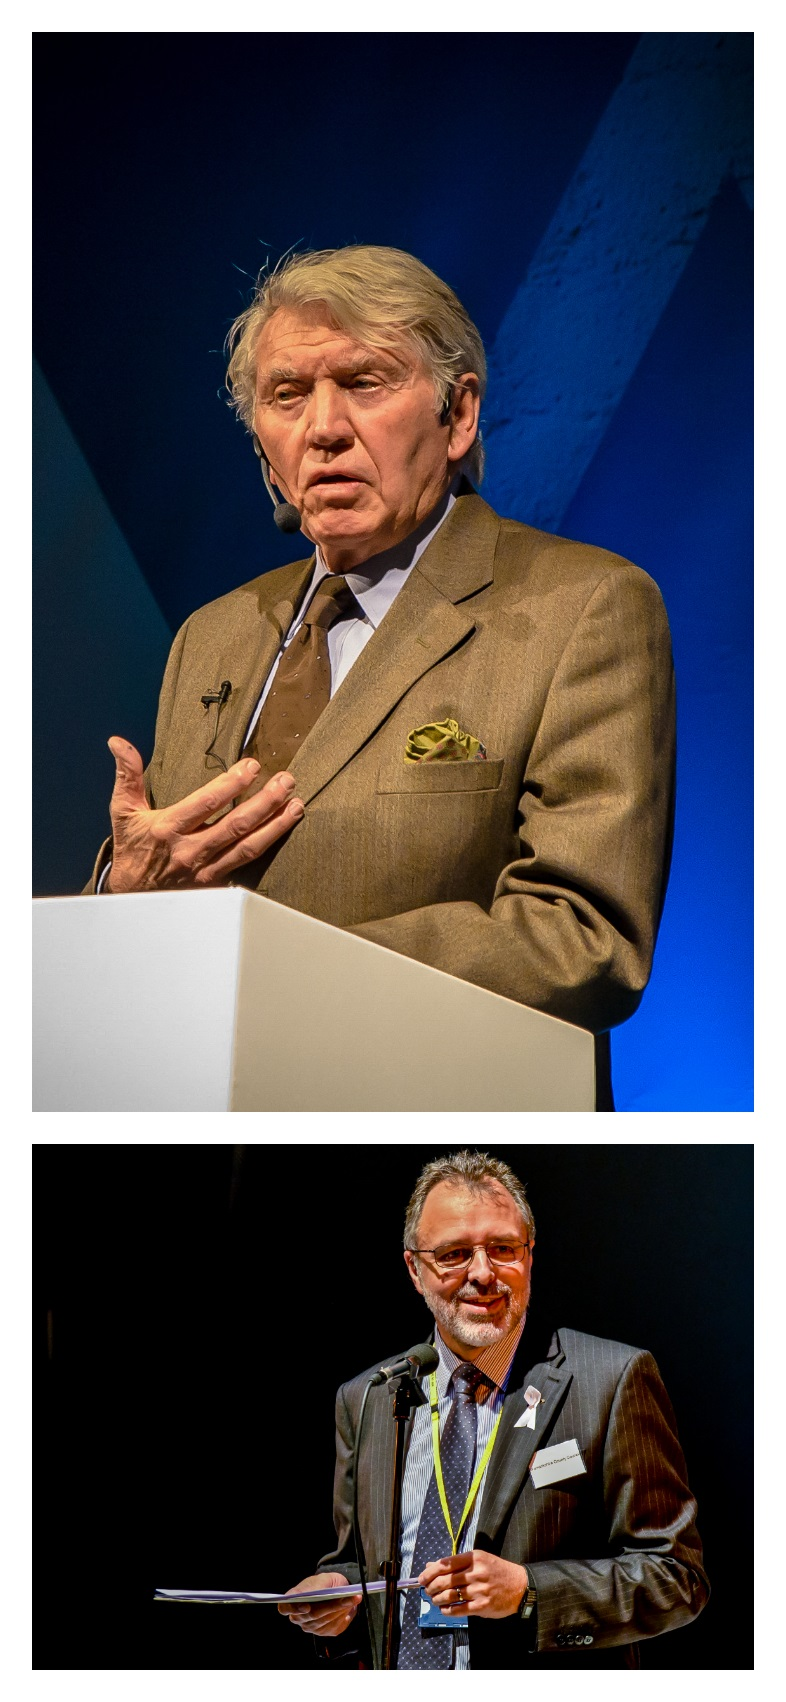 Conference Photography Birmingham Warwickshire London Midlands UK 8